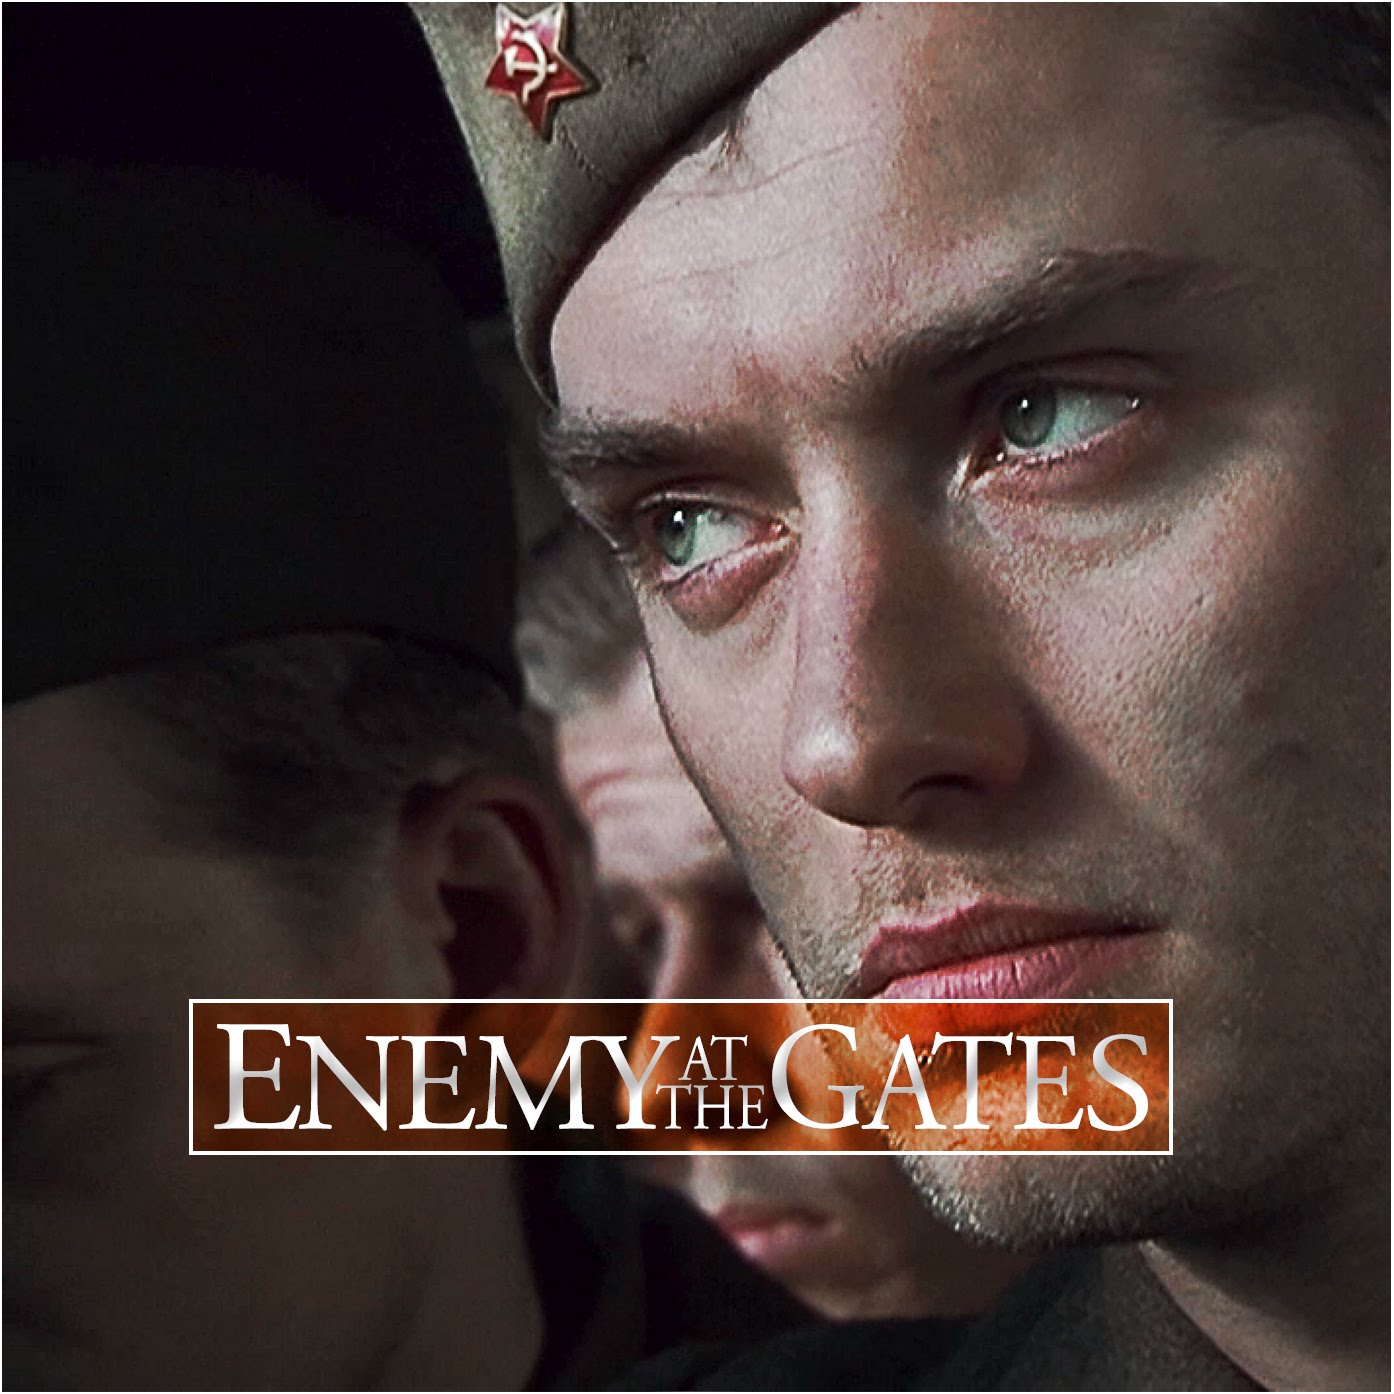 Enemy at the Gates (2001) DivX Movie   Downloads 4 all, Movies, Music, Software, Tips and Tricks...